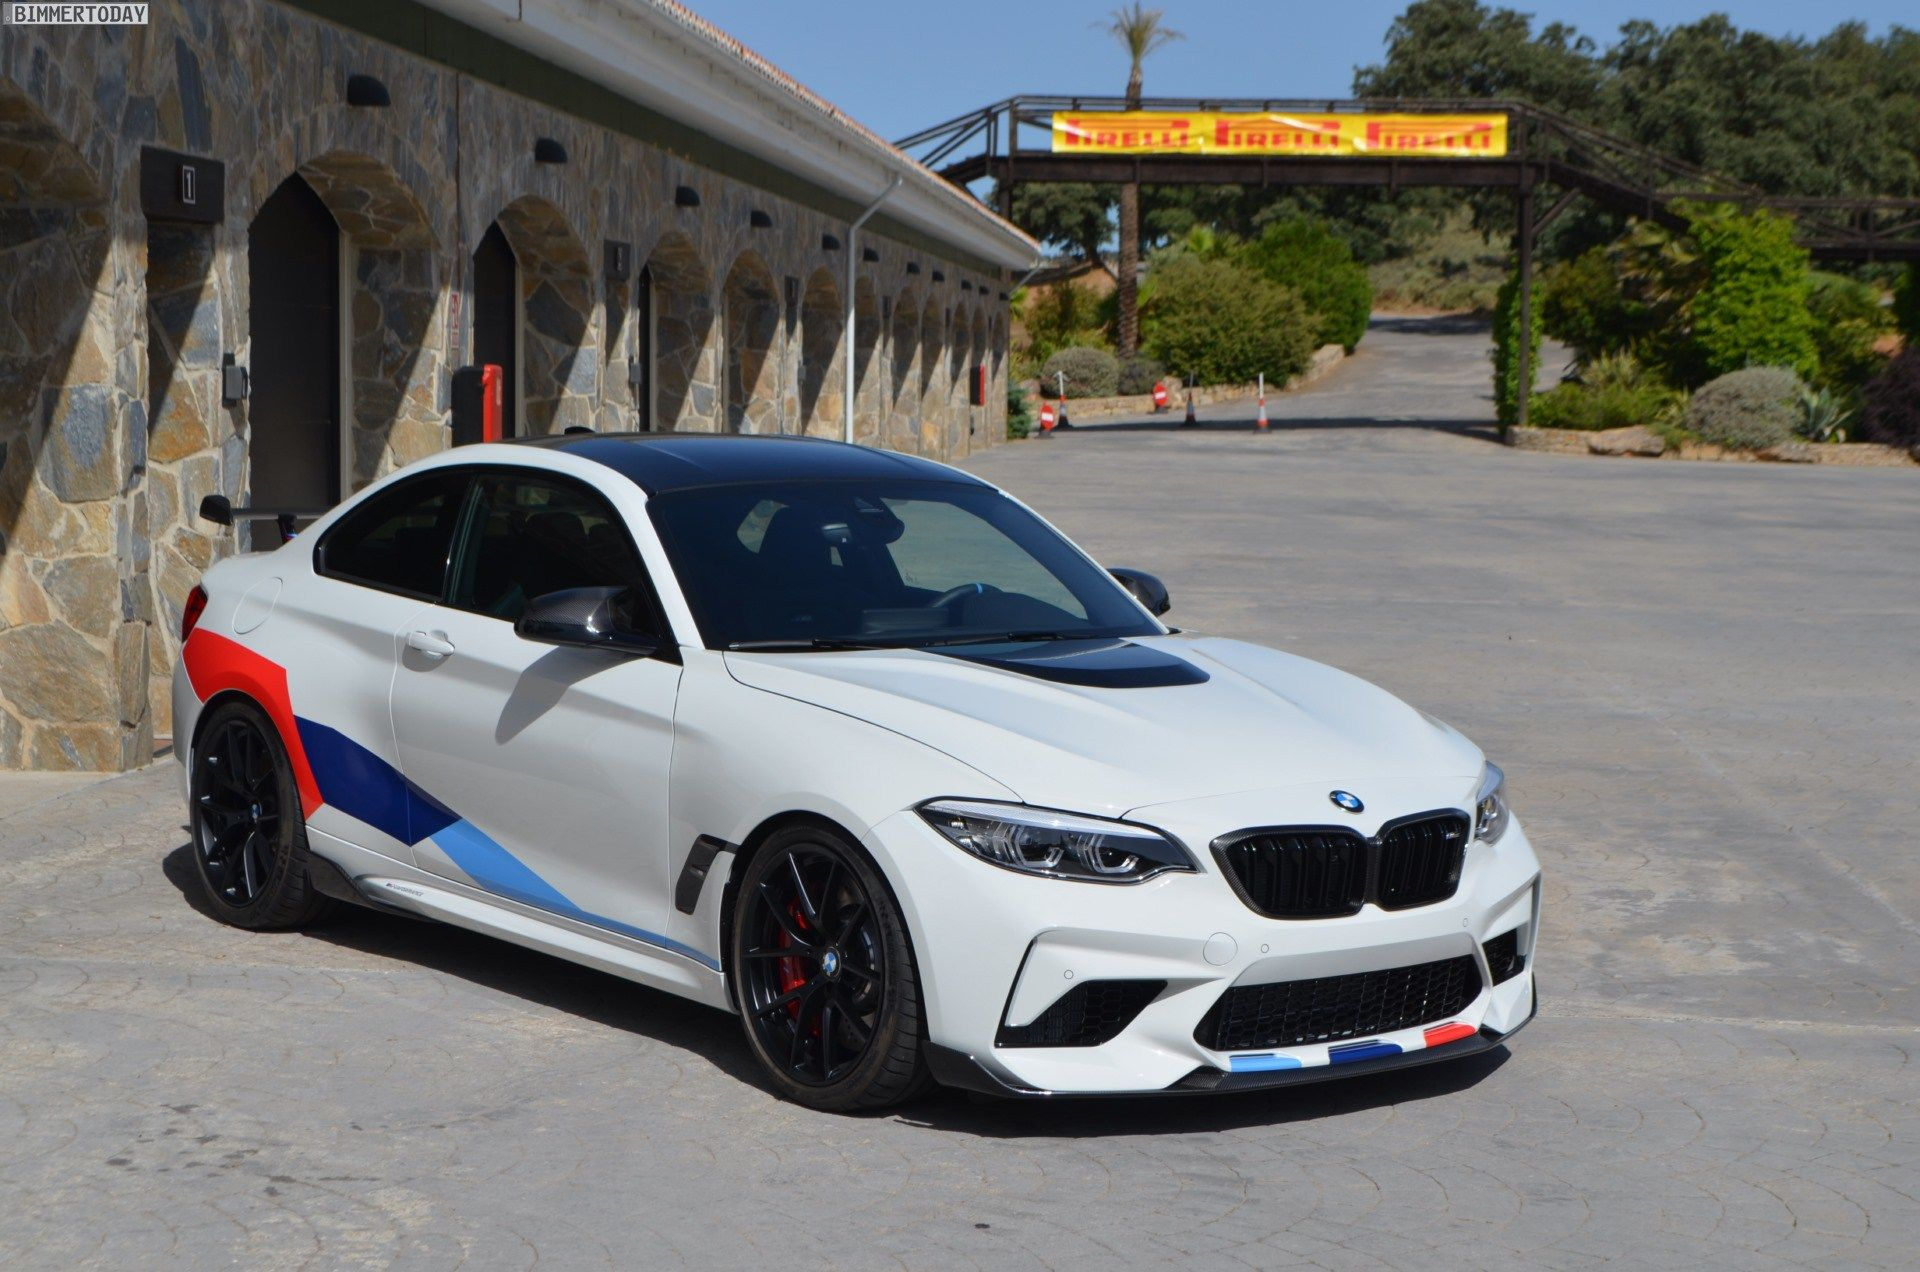 2019 bmw m2 competition with m performance pack bmw bmw bmw m2 rh pinterest com